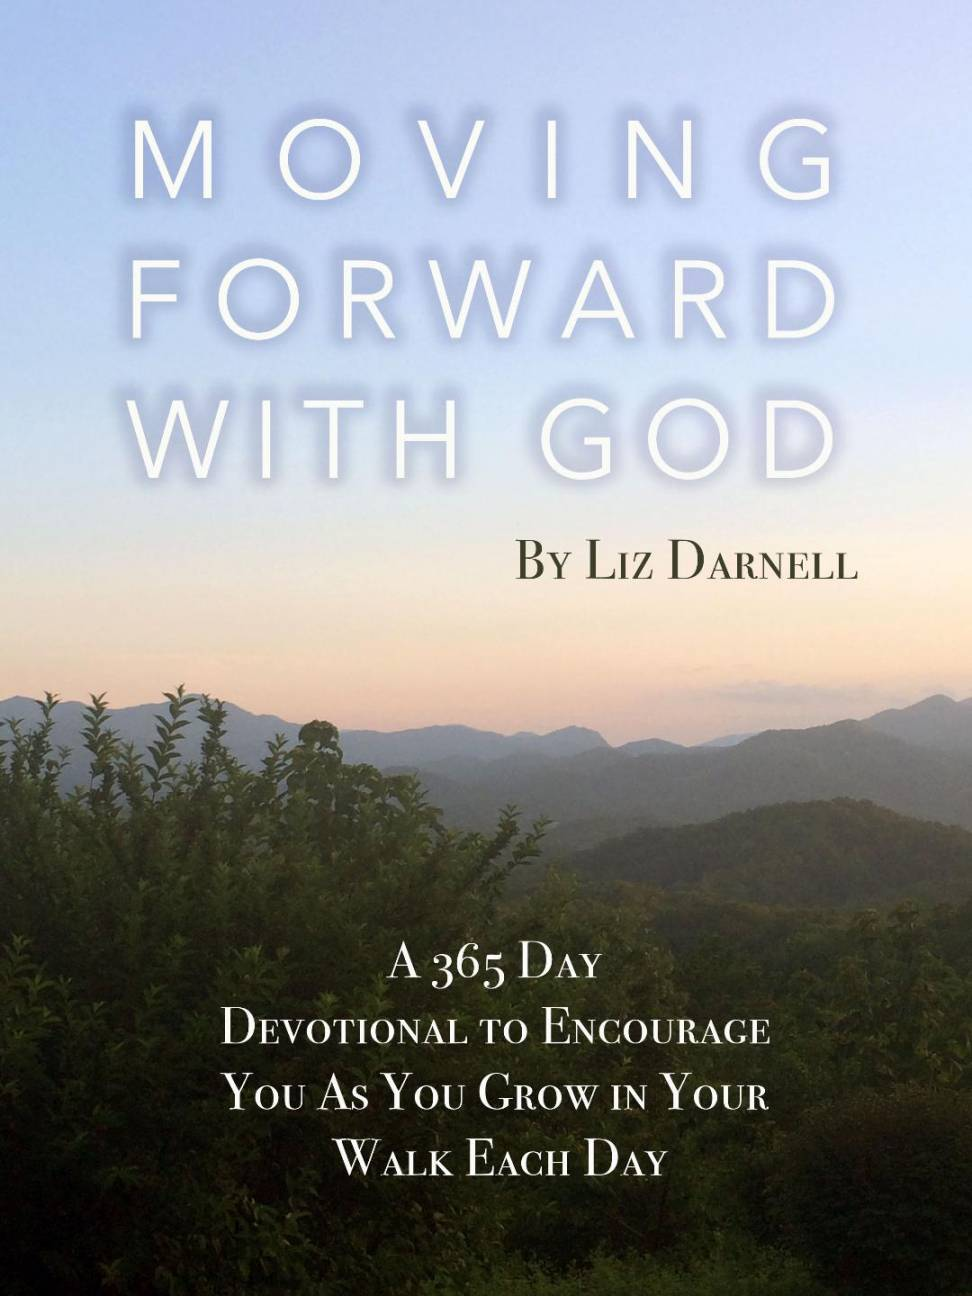 Moving Forward With God Daily Devotional